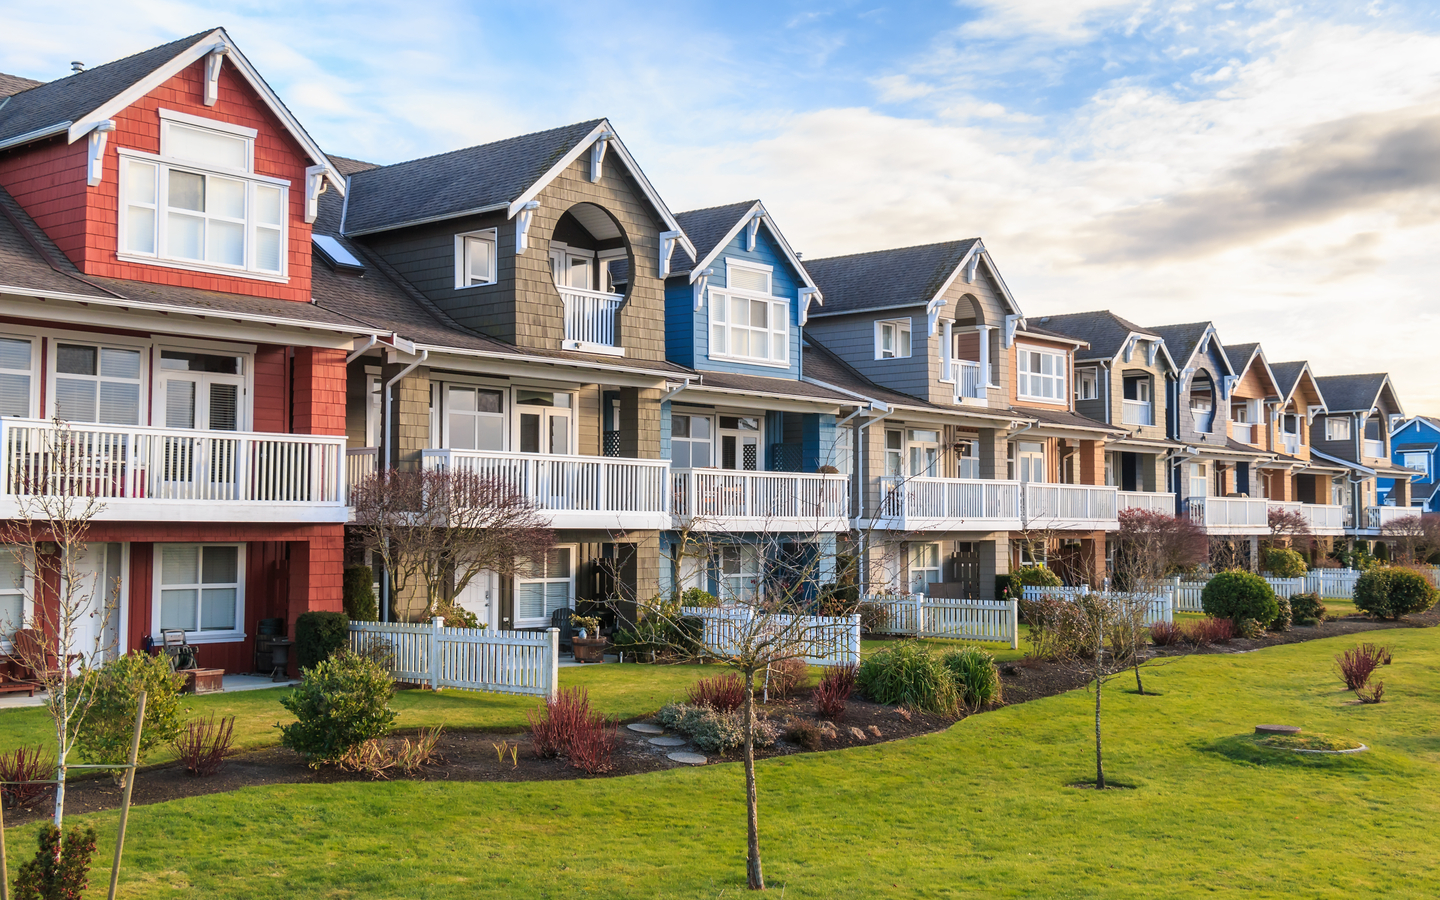 Overseas property investments in Columbia offer high rental yields